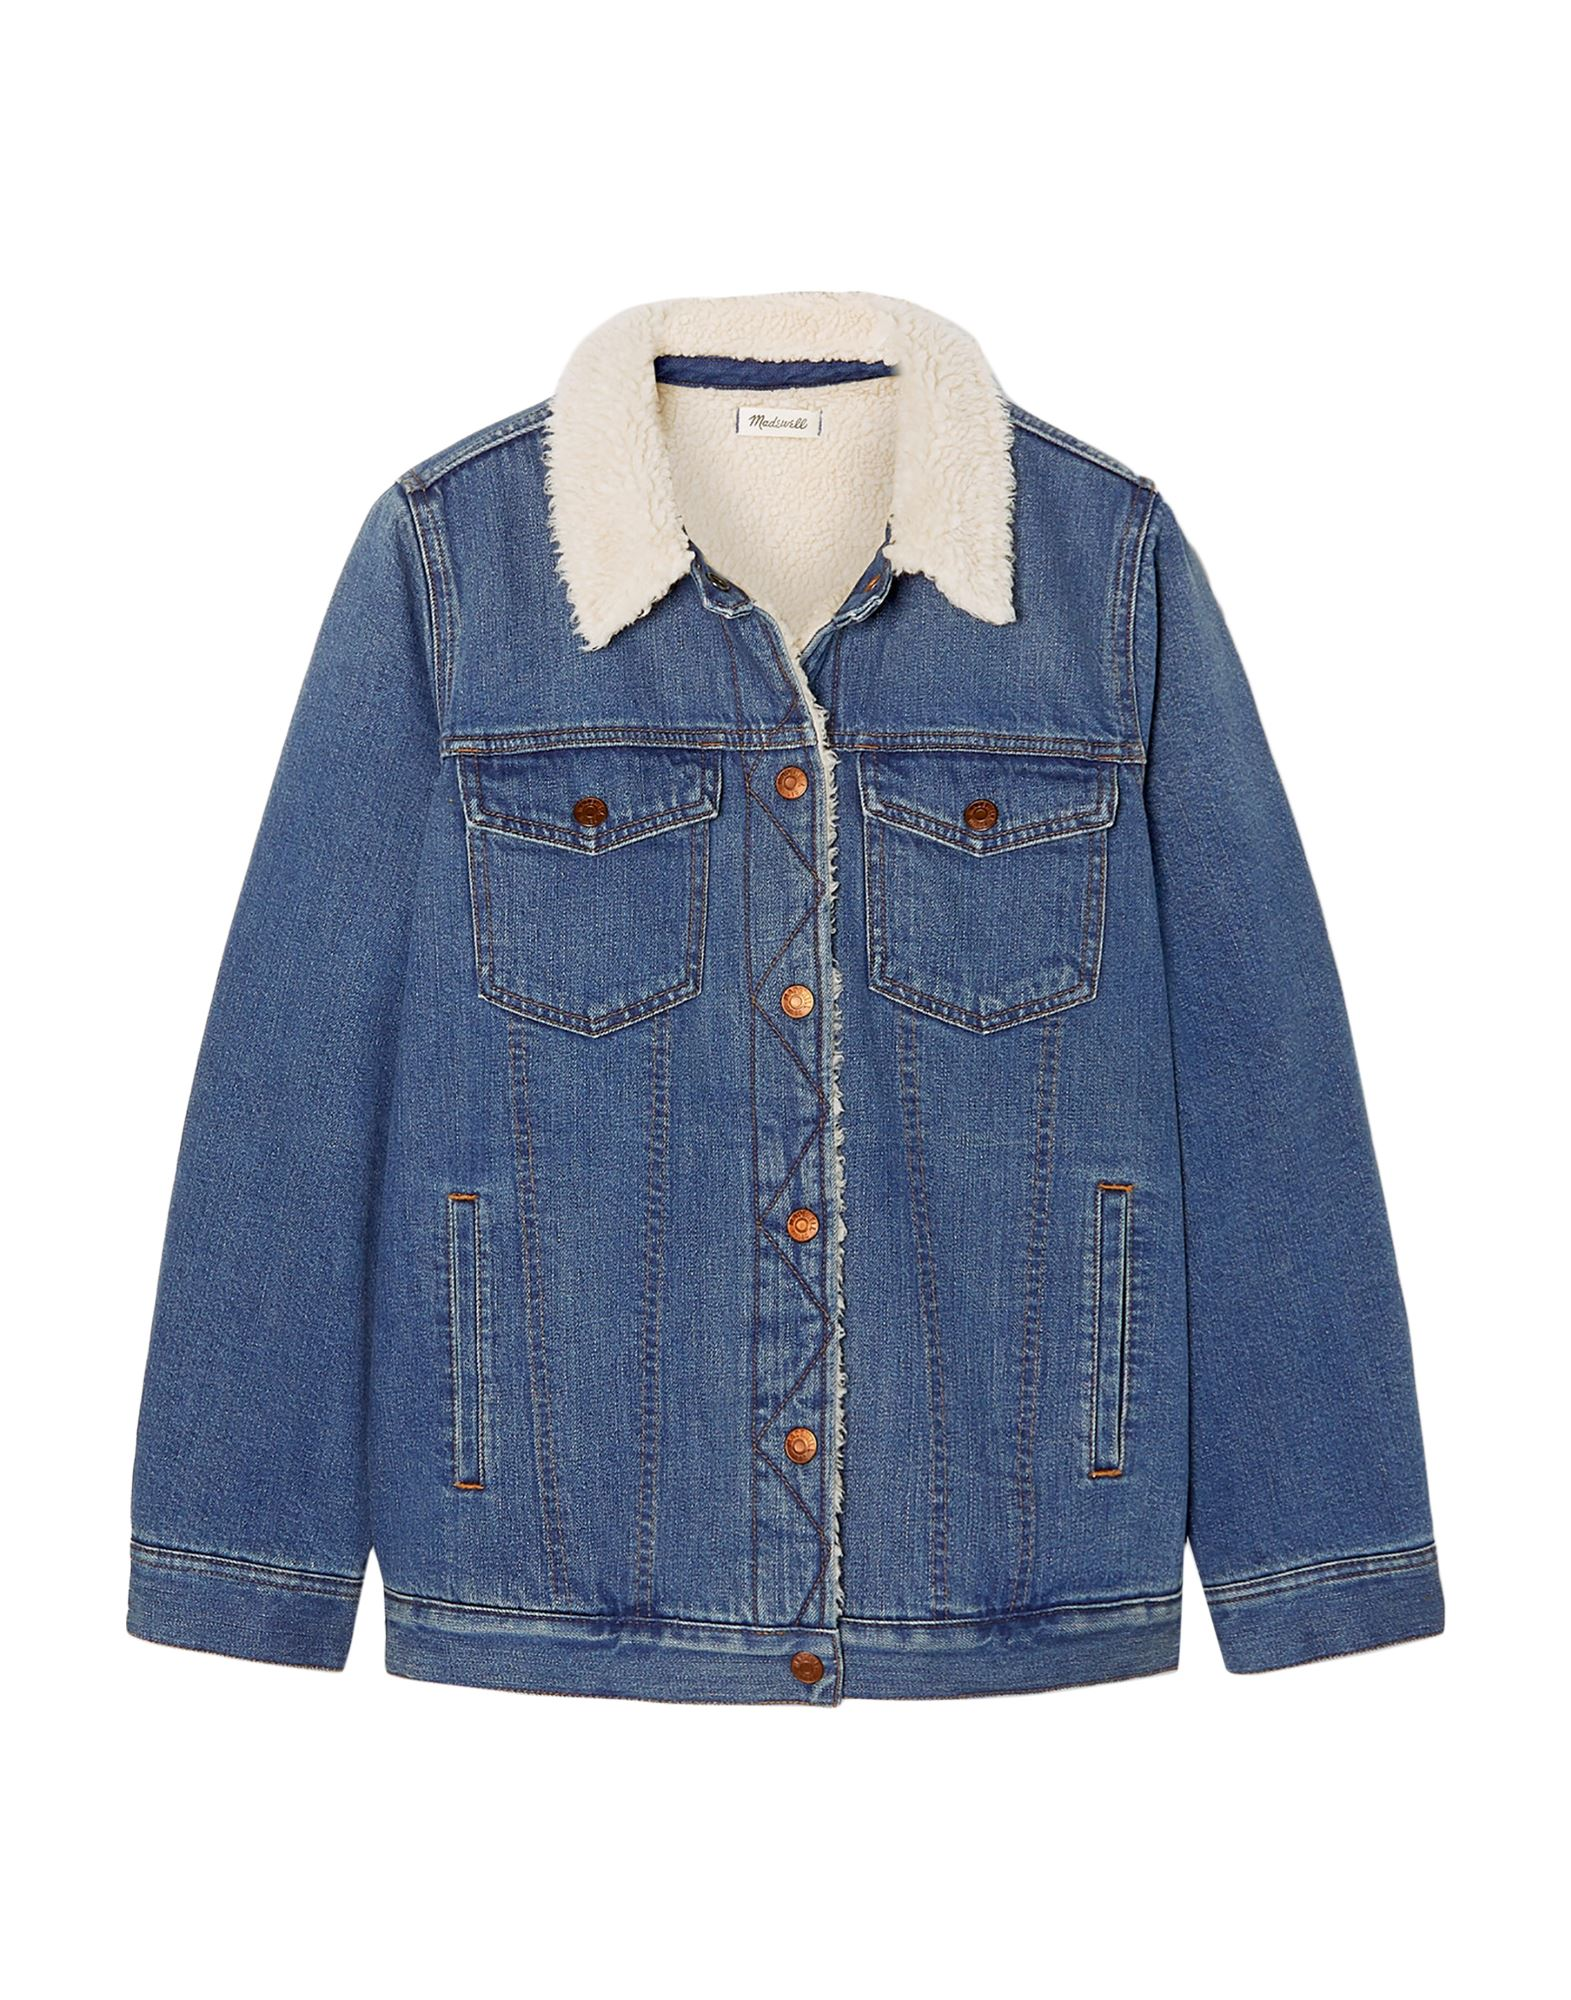 MADEWELL Denim outerwear. denim, no appliqués, basic solid color, medium wash, long sleeves, classic neckline, single-breasted, snap button cuffs, front closure, snap buttons fastening, multipockets, faux fur inner. 100% Cotton